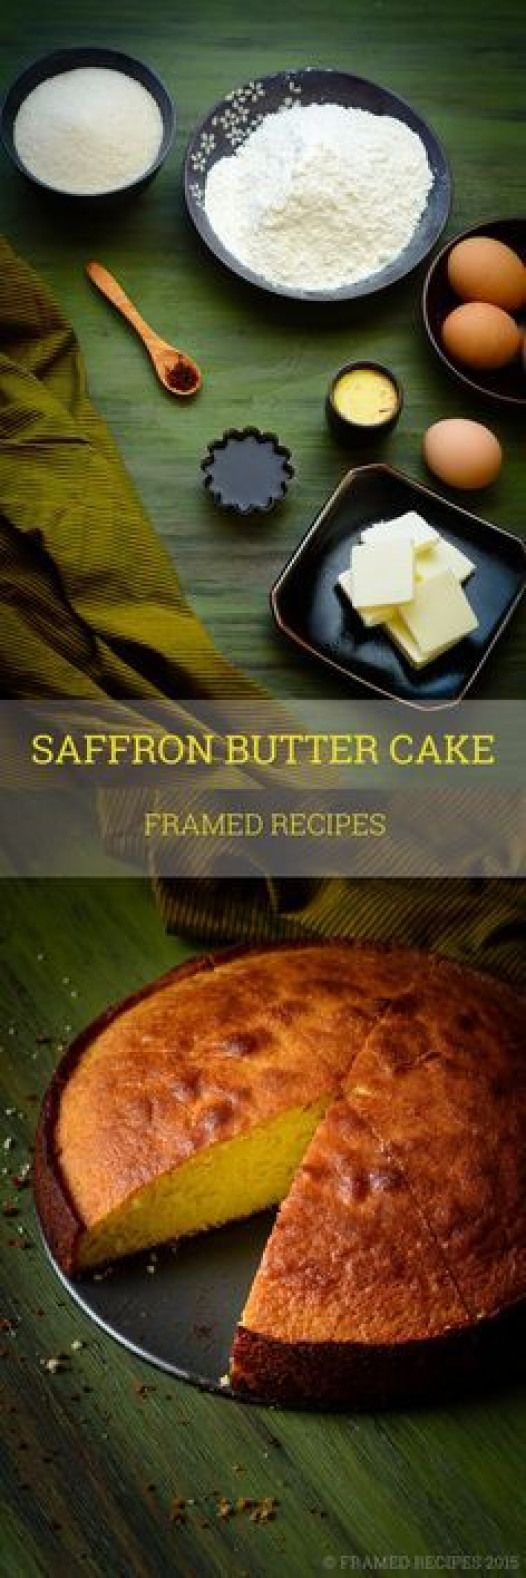 This saffron infused butter cake is all things delicious - (aromatic) saffron buttery moisttenderly sweet.